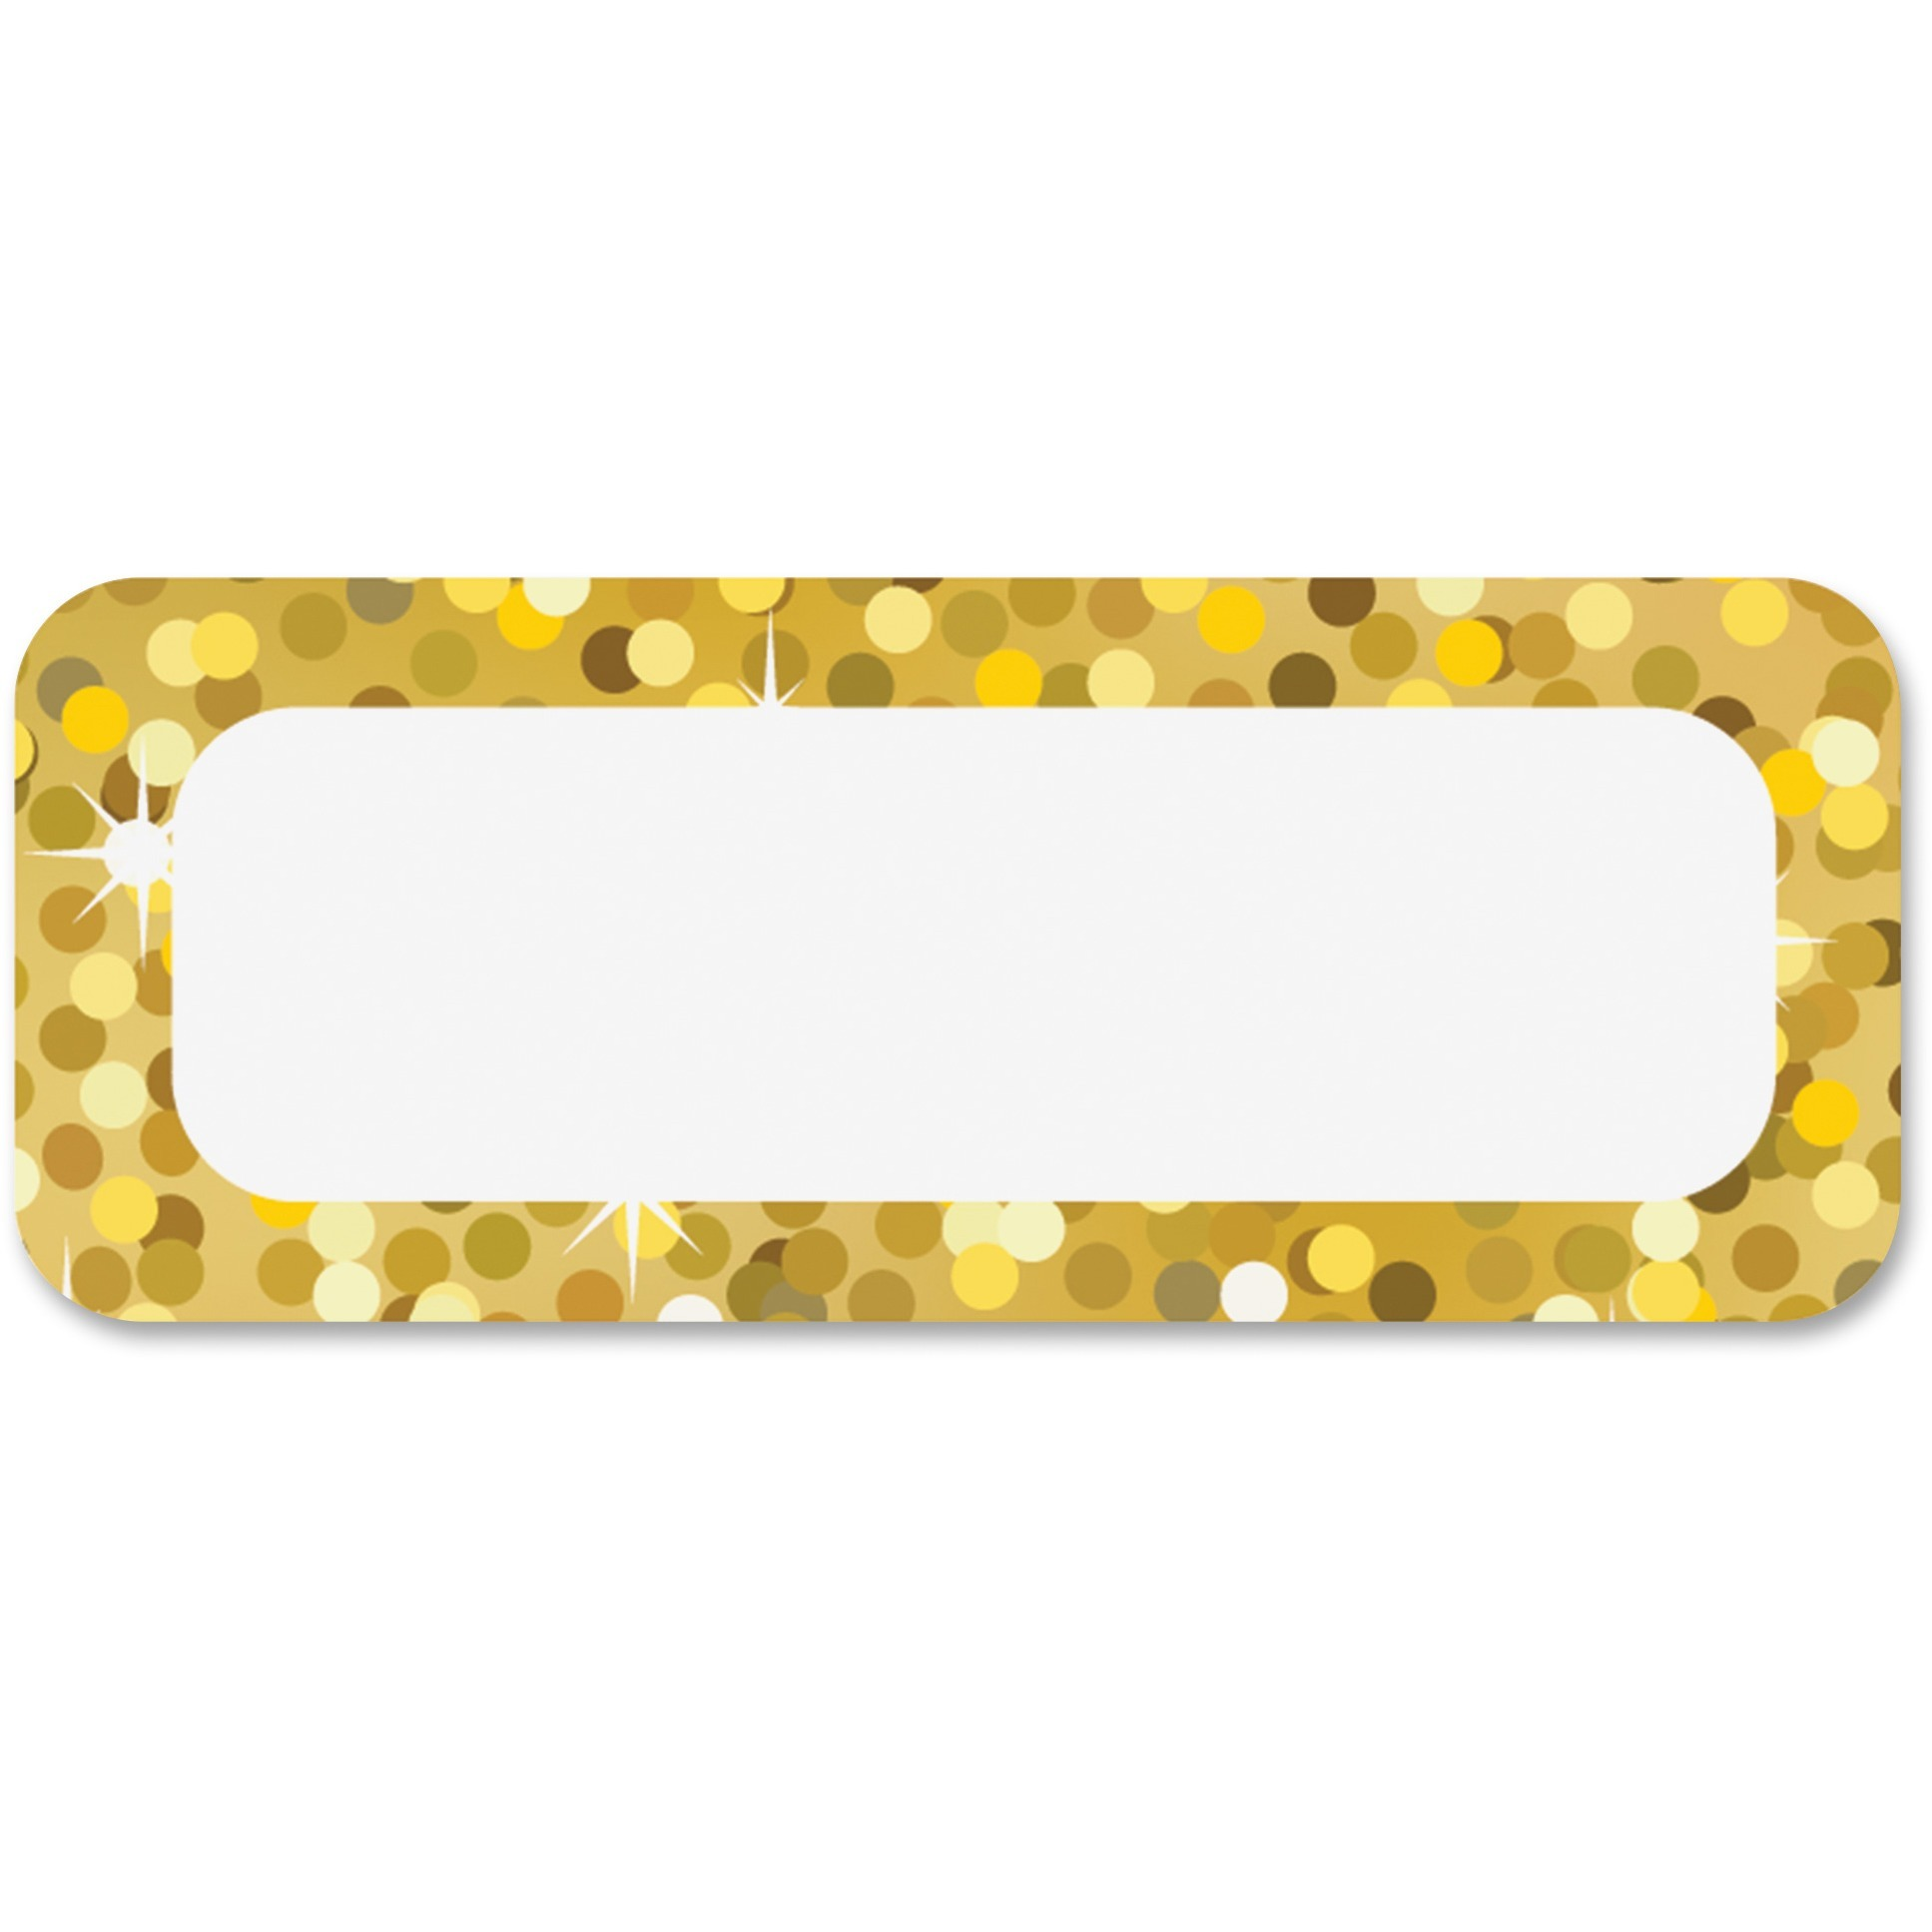 Ashley, ASH10082, Gold Sparkle Magnetic Nameplate, 1 Pack, Gold by Ashley Productions, Inc